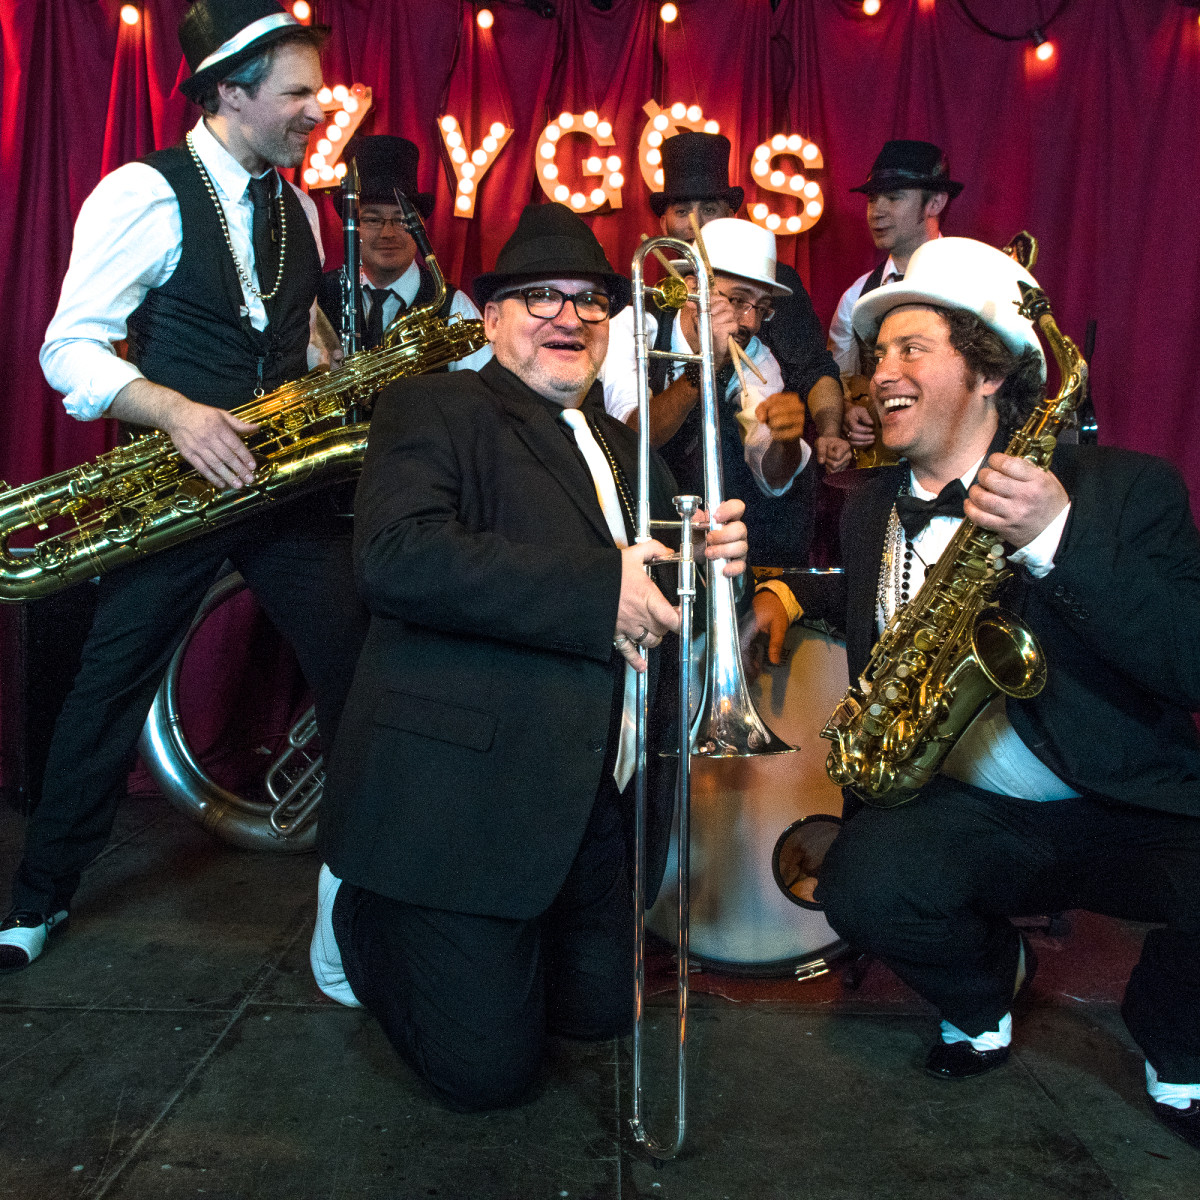 zygos_brass_band_bal